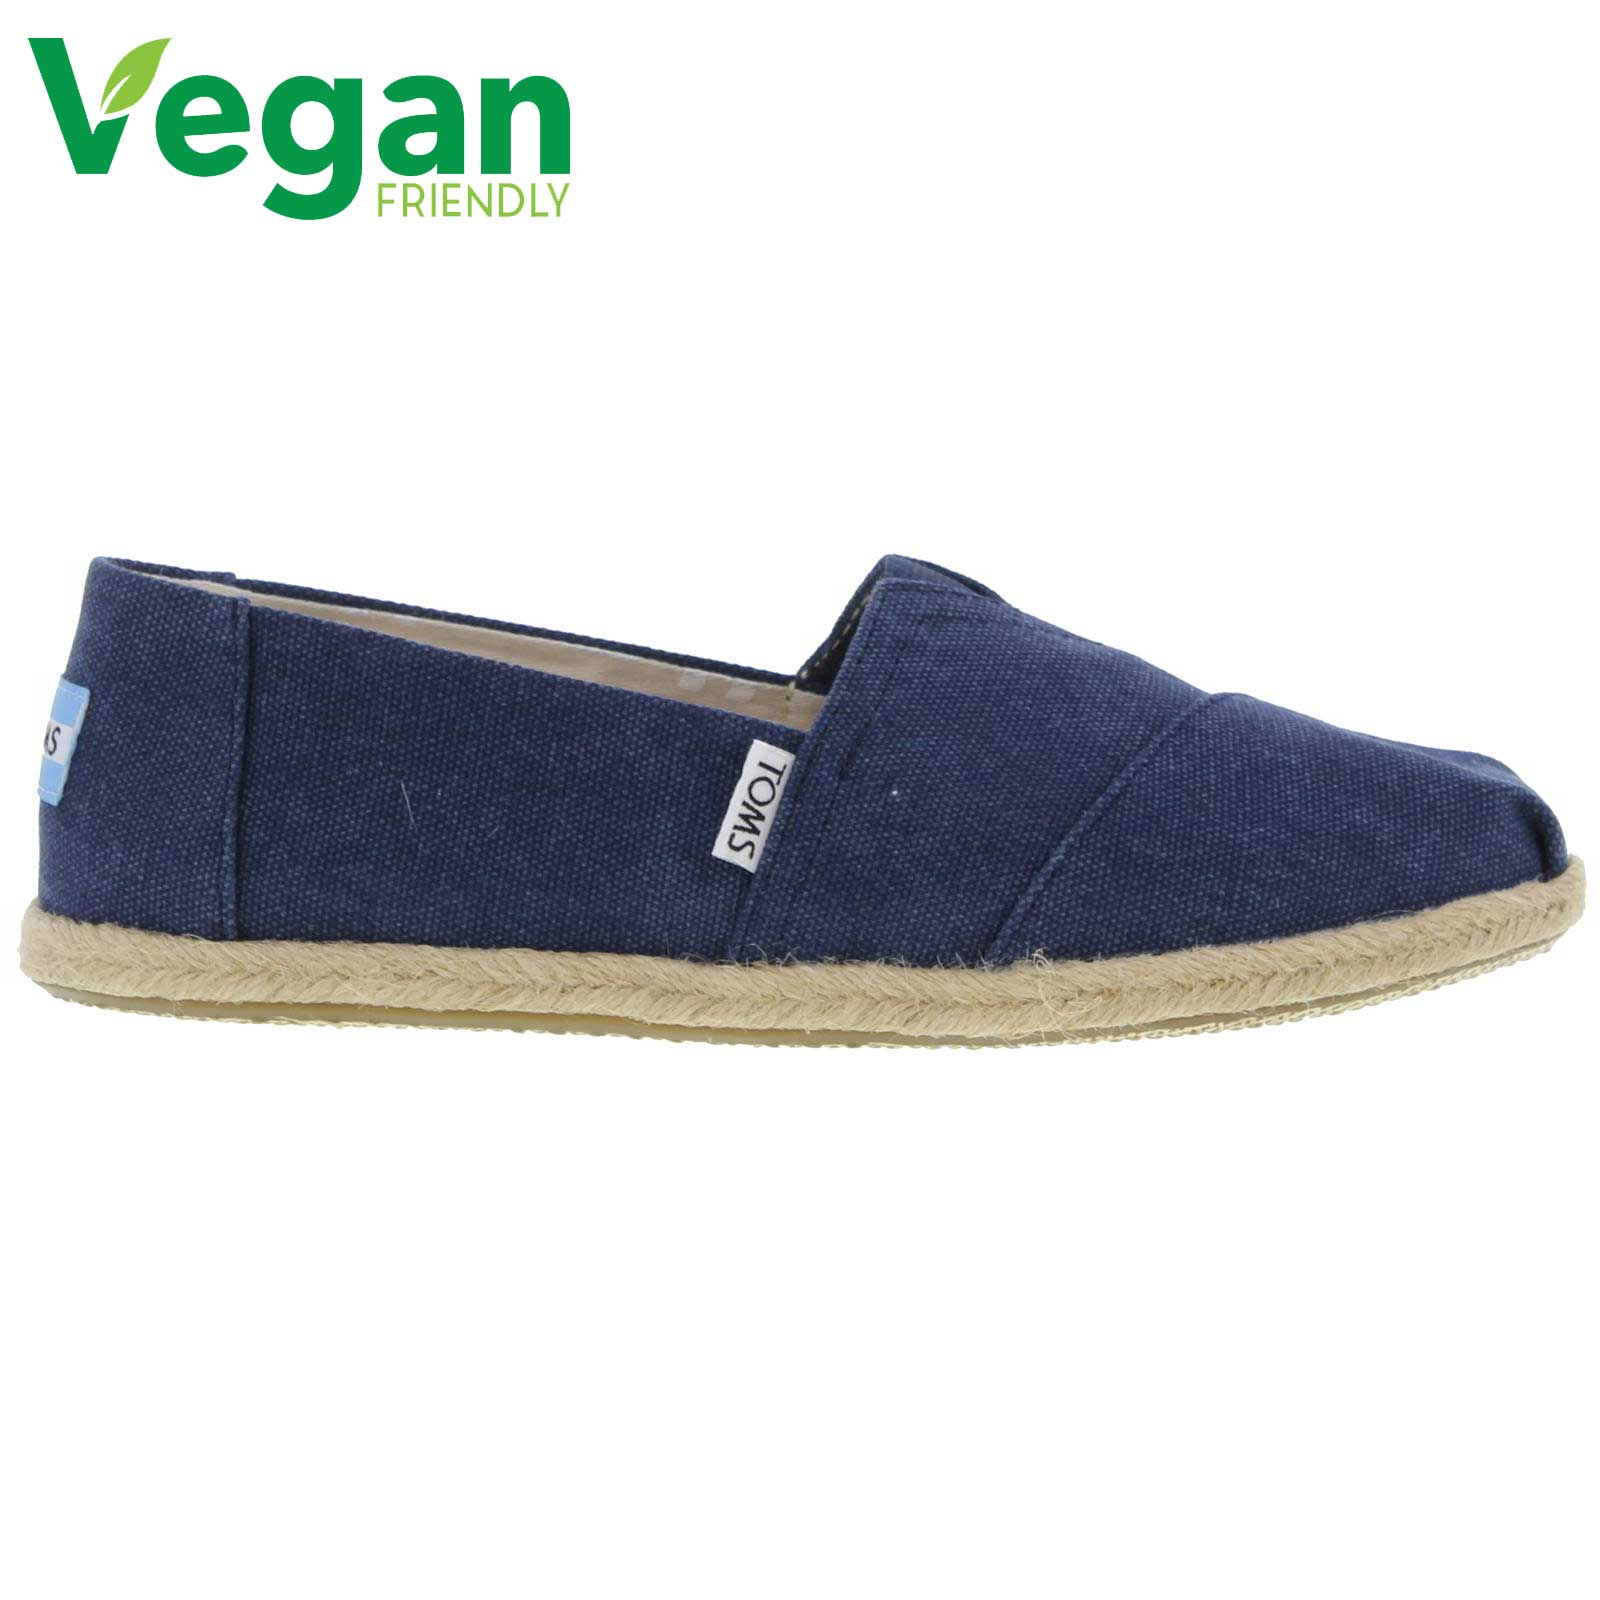 Toms Womens Classic Espadrille Vegan Shoes - Navy Washed